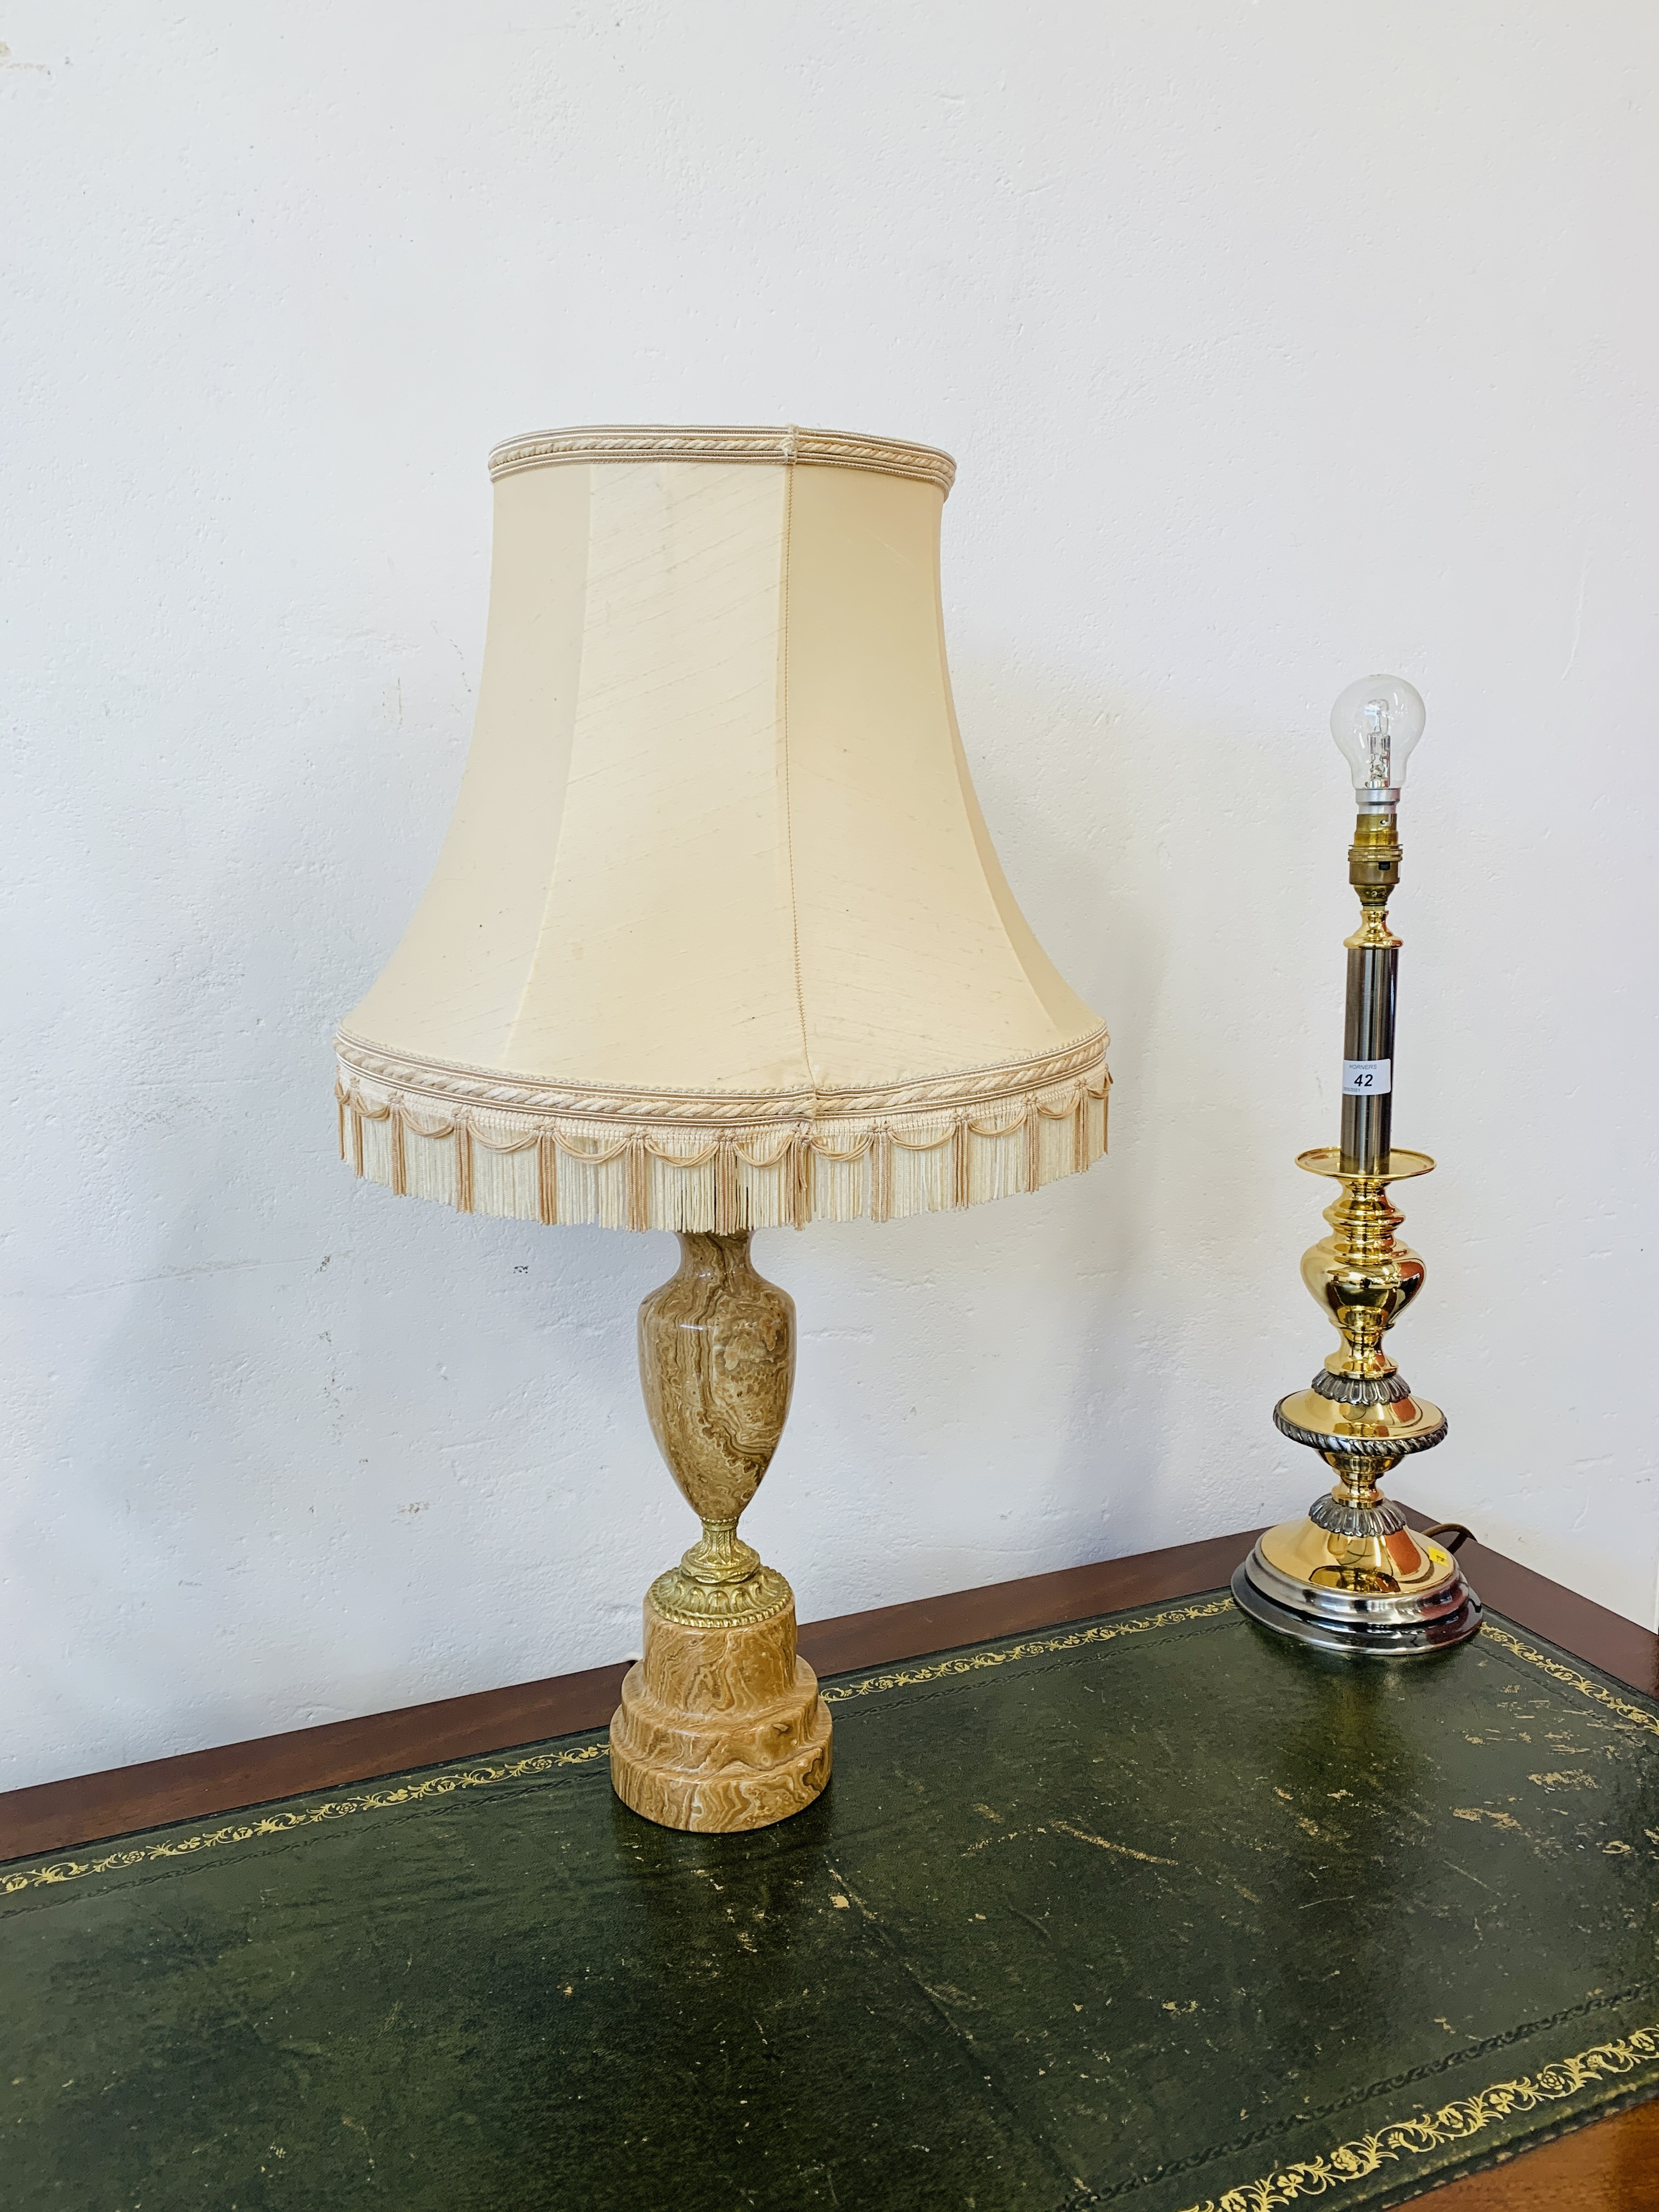 A GOOD QUALITY MARBLE TABLE LAMP ALONG WITH A PAIR OF MODERN POLISHED METAL TABLE LAMPS - SOLD AS - Image 11 of 12